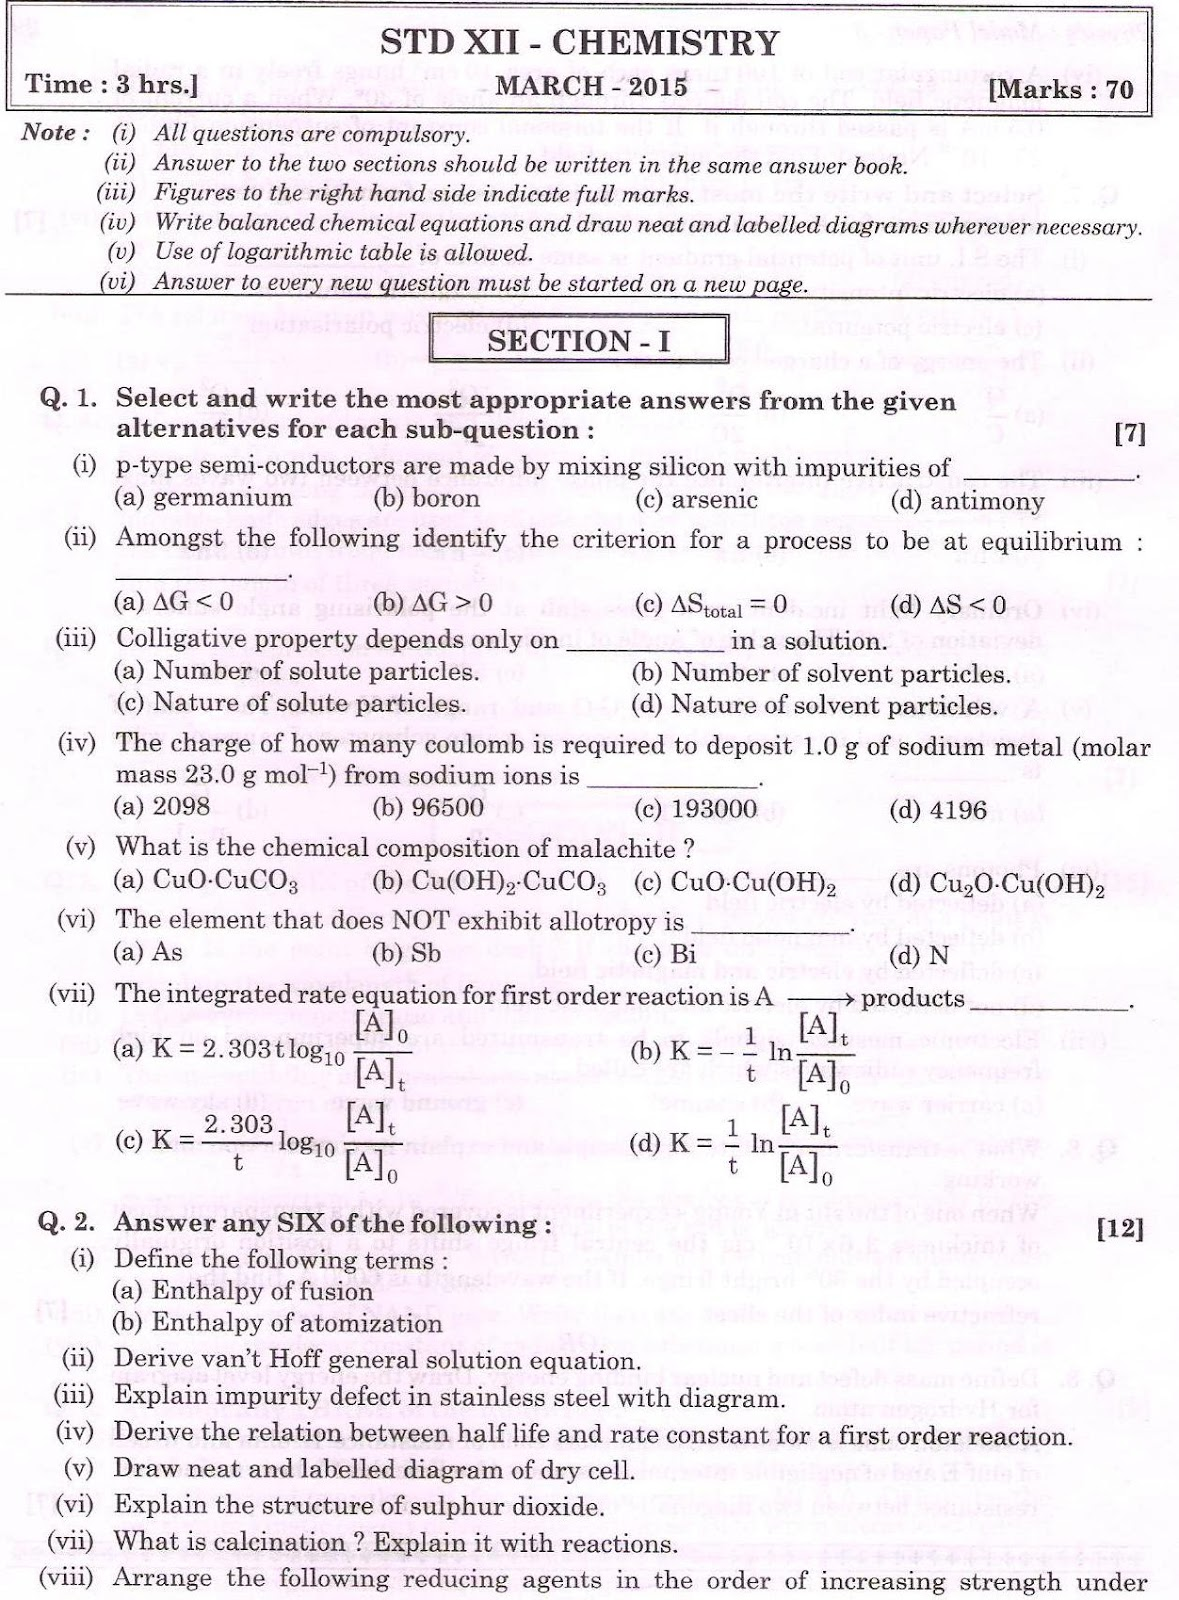 CHEMISTRY – MARCH 2015 HSC MAHARASHTRA BOARD QUESTION PAPER